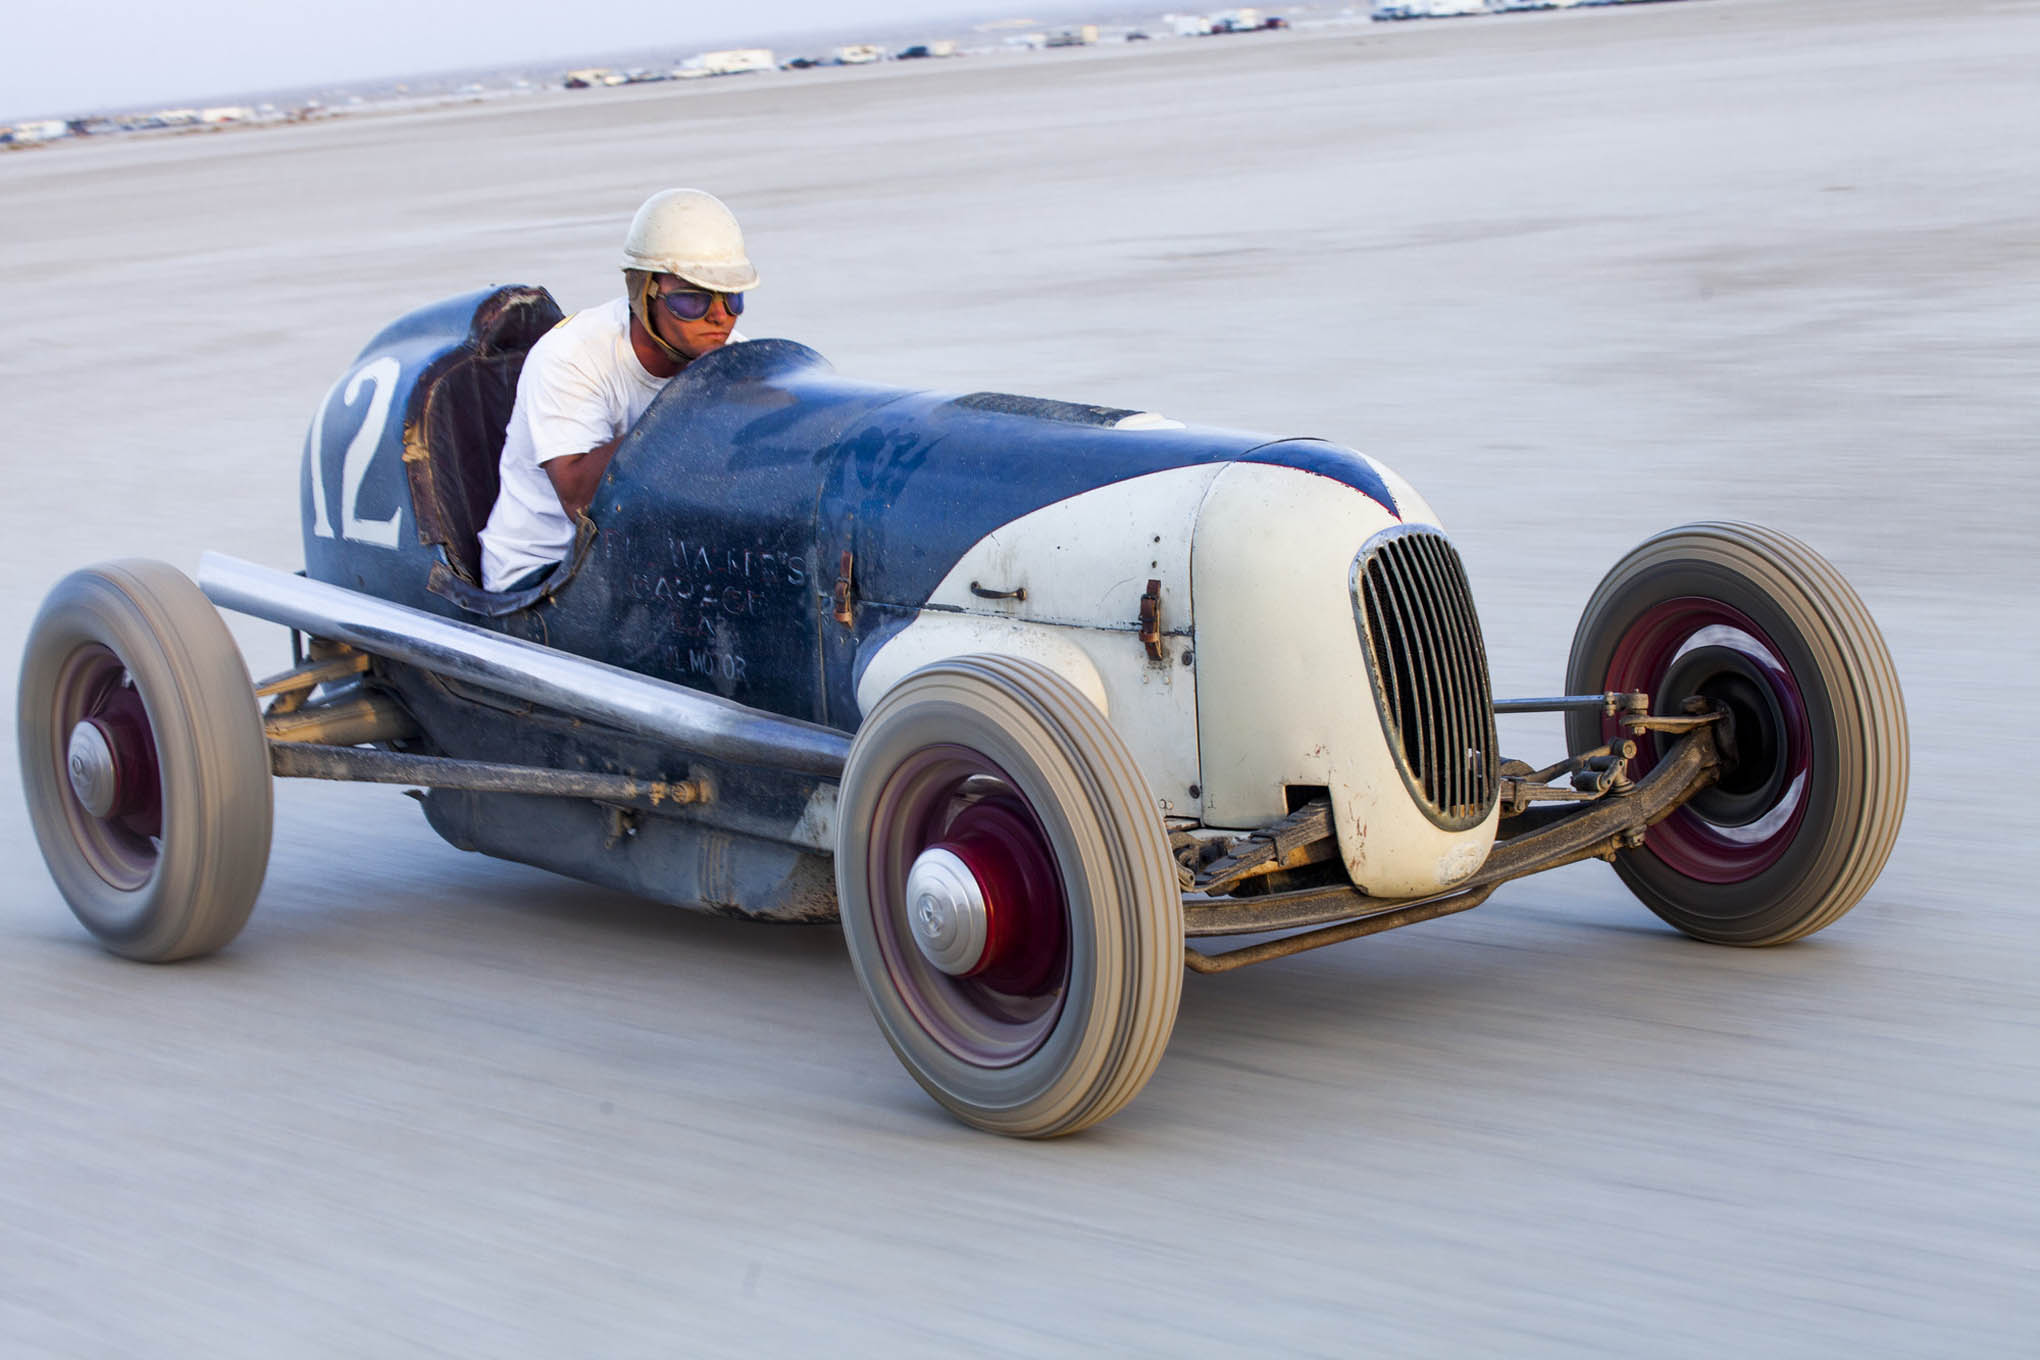 Is it 1946 or 2016? You'd be hard-pressed to tell, unless you recognized Billy Lattin sitting low in the cockpit. Billy is the third generation of Lattin men to drive the lakester at El Mirage, where it first raced back in the '40s.